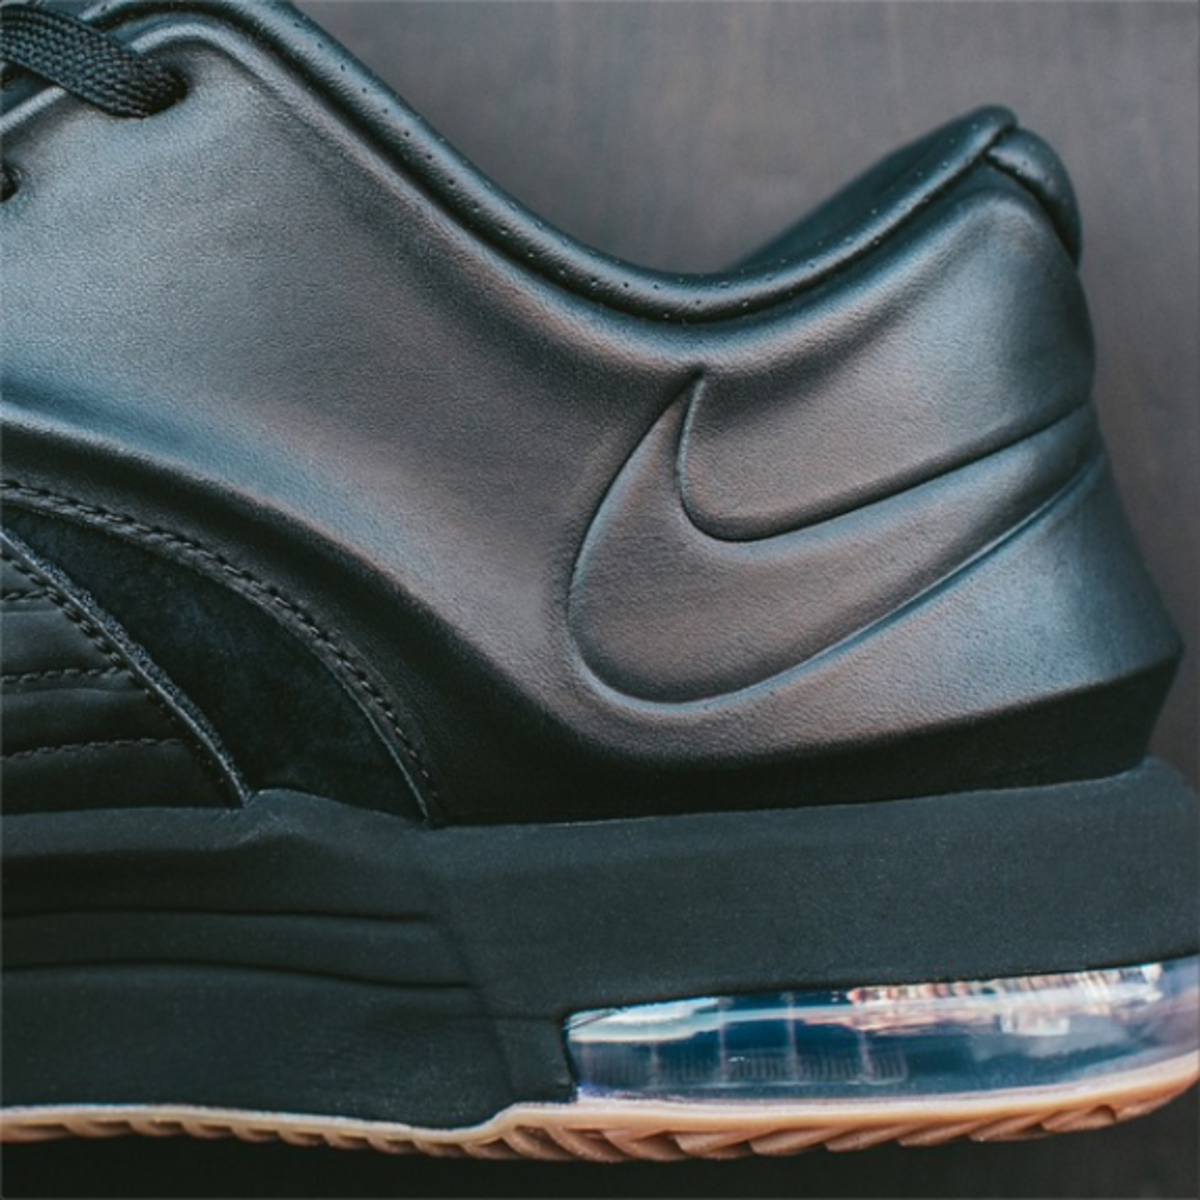 nike-kd-7-ext-black-suede-03